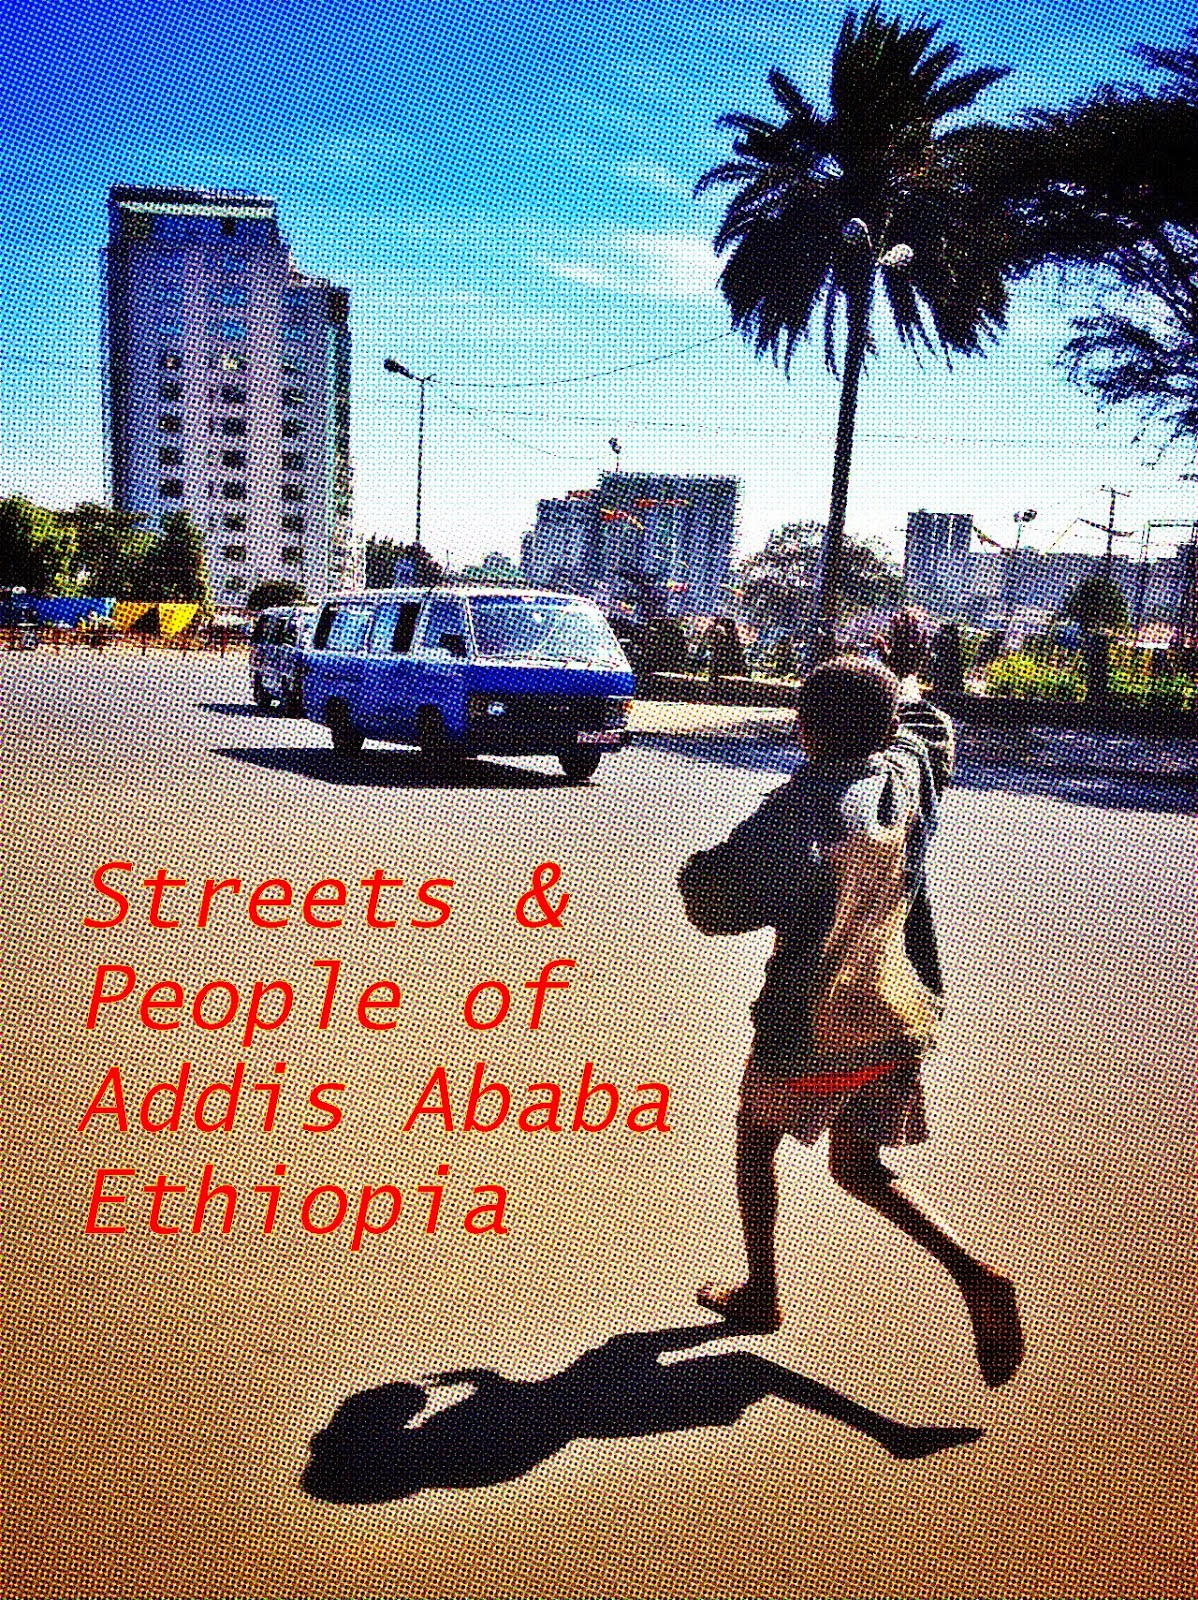 dating in addis ababa